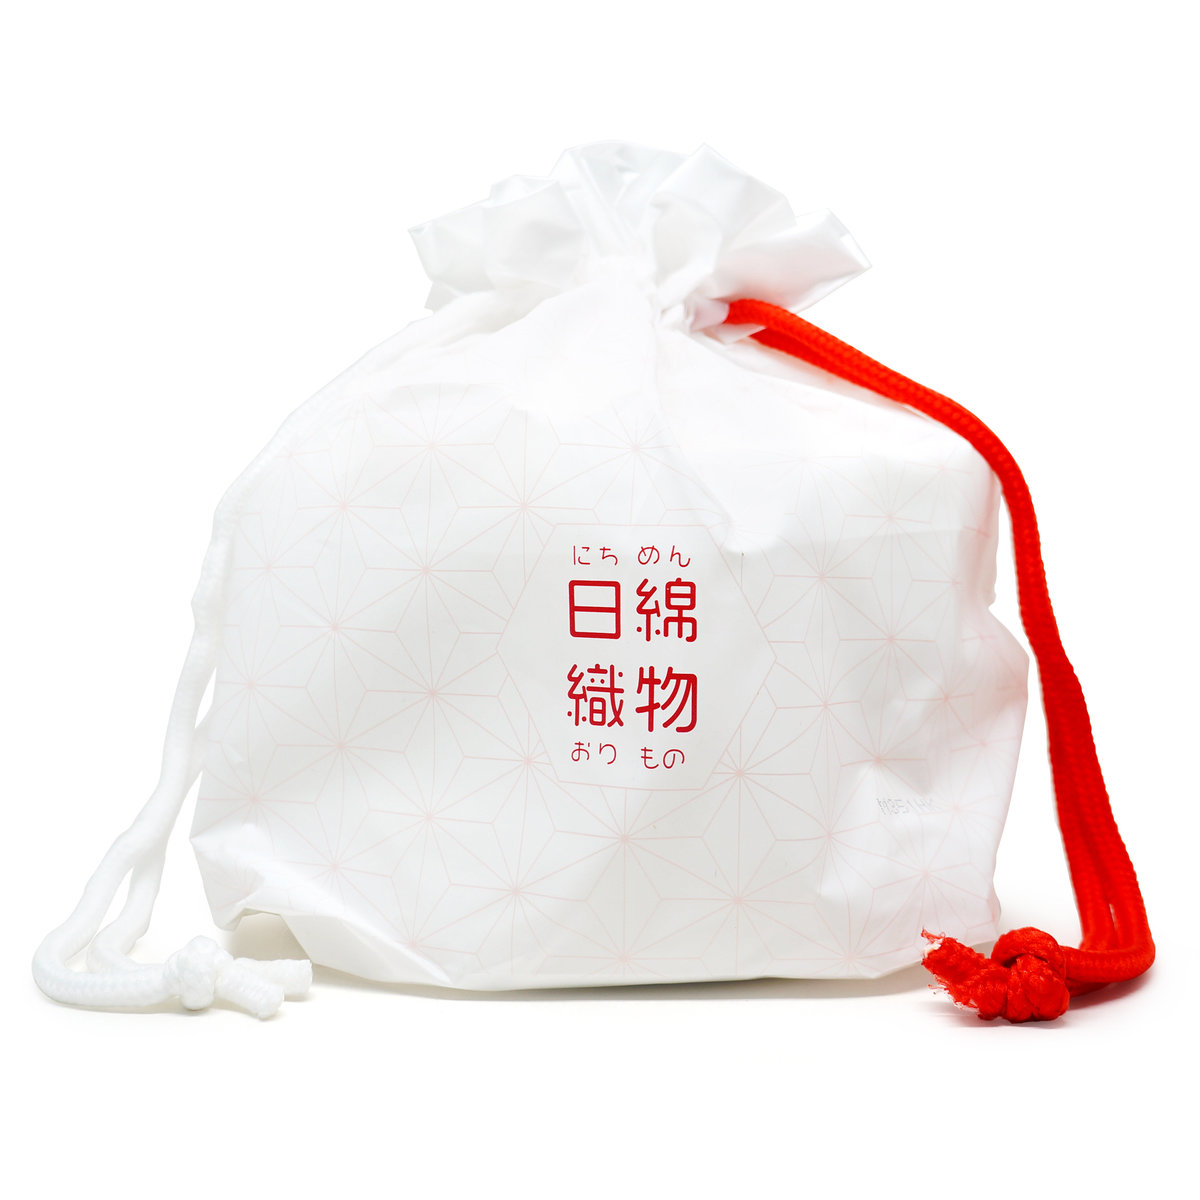 Wet and dry cleansing cleansing towel 200mm x 220mm 80pcs Package (4573486020214)